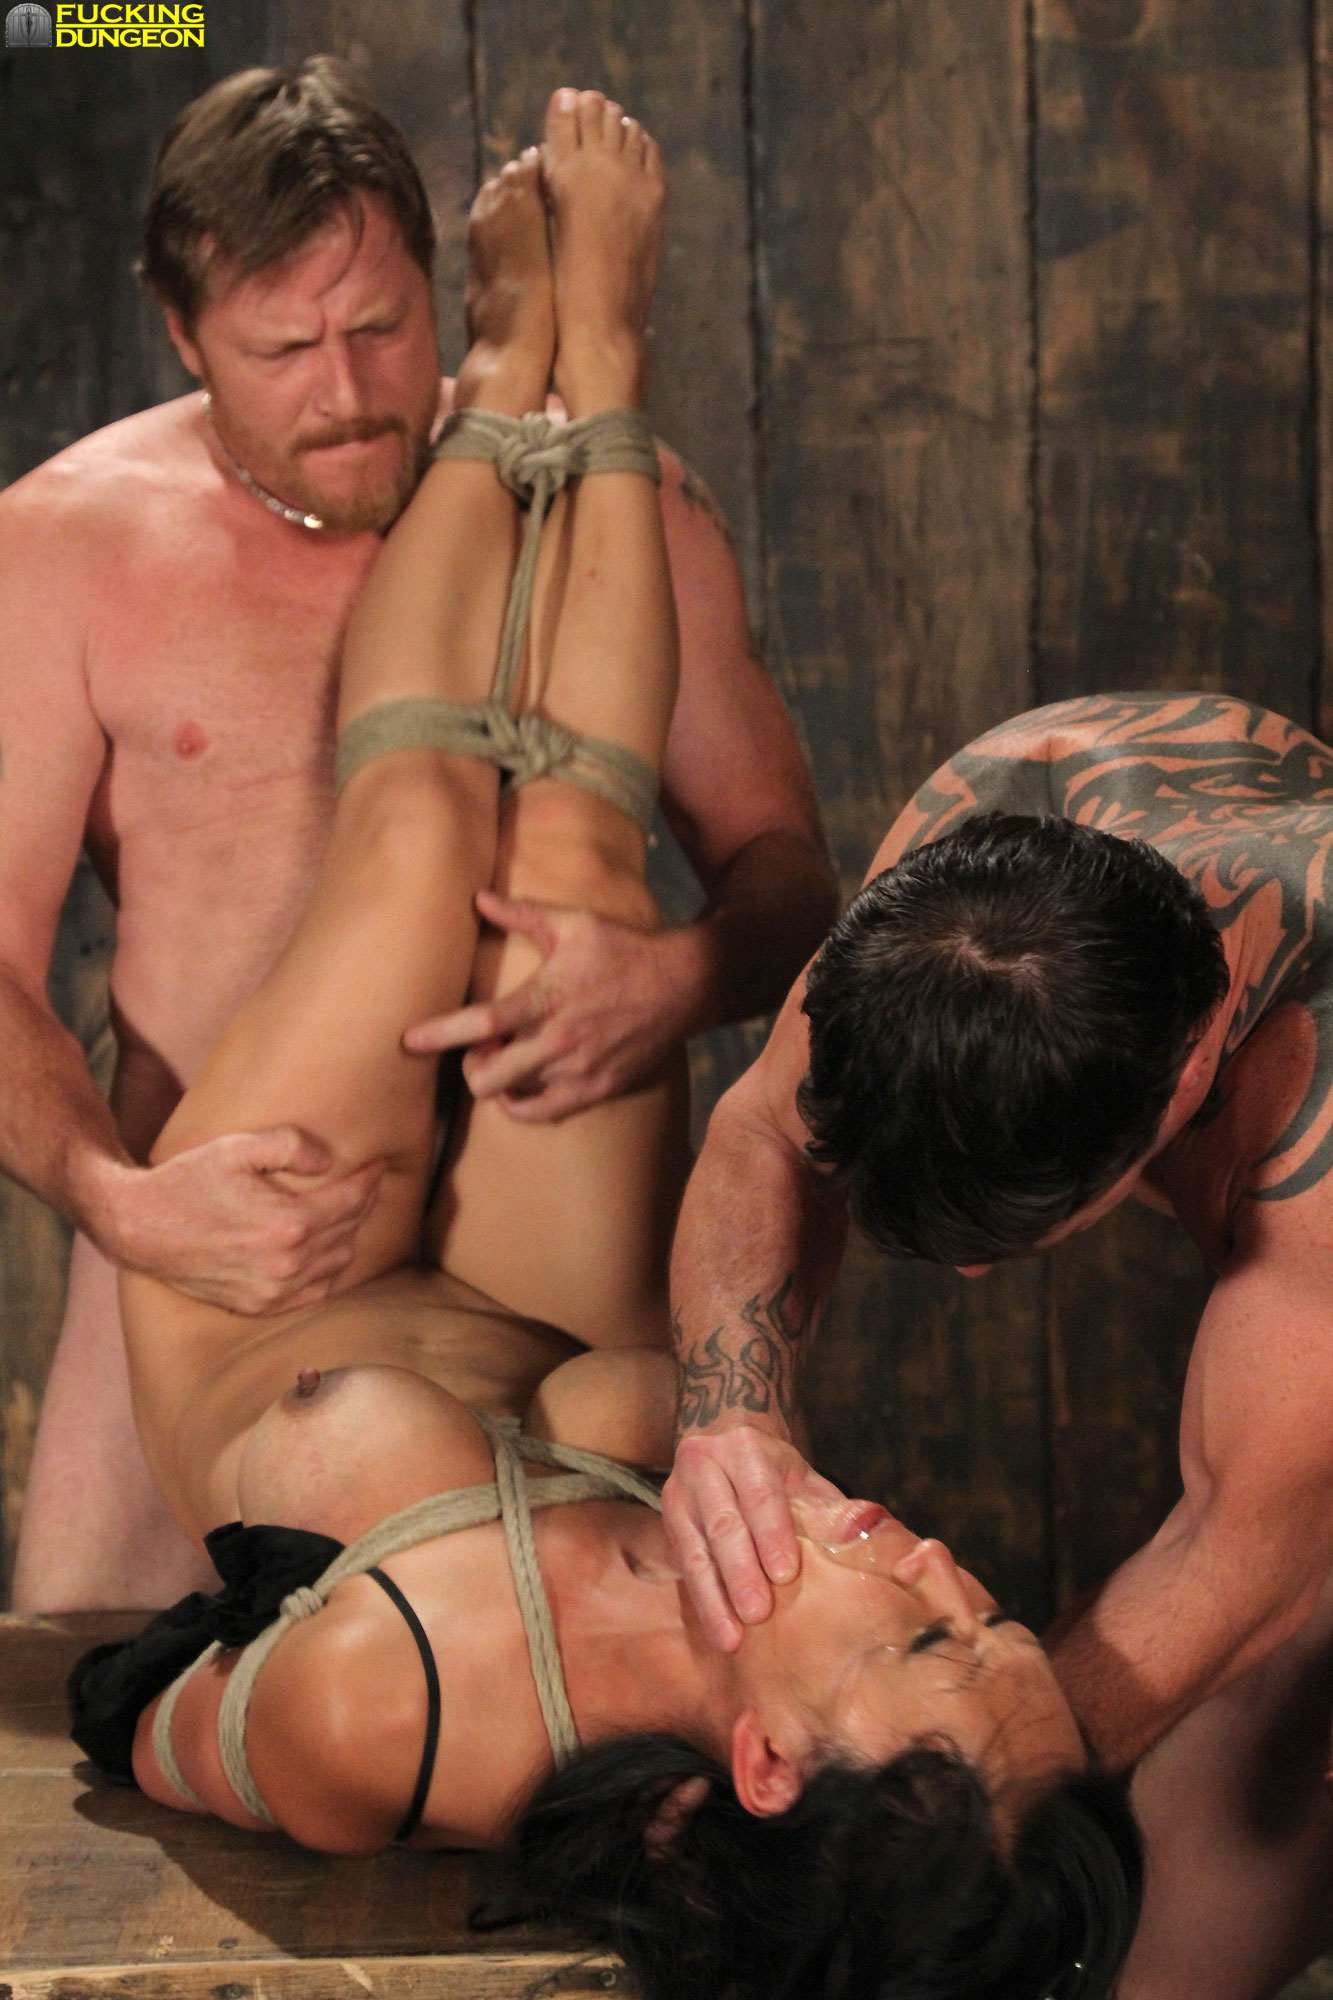 Join. tia ling bdsm are